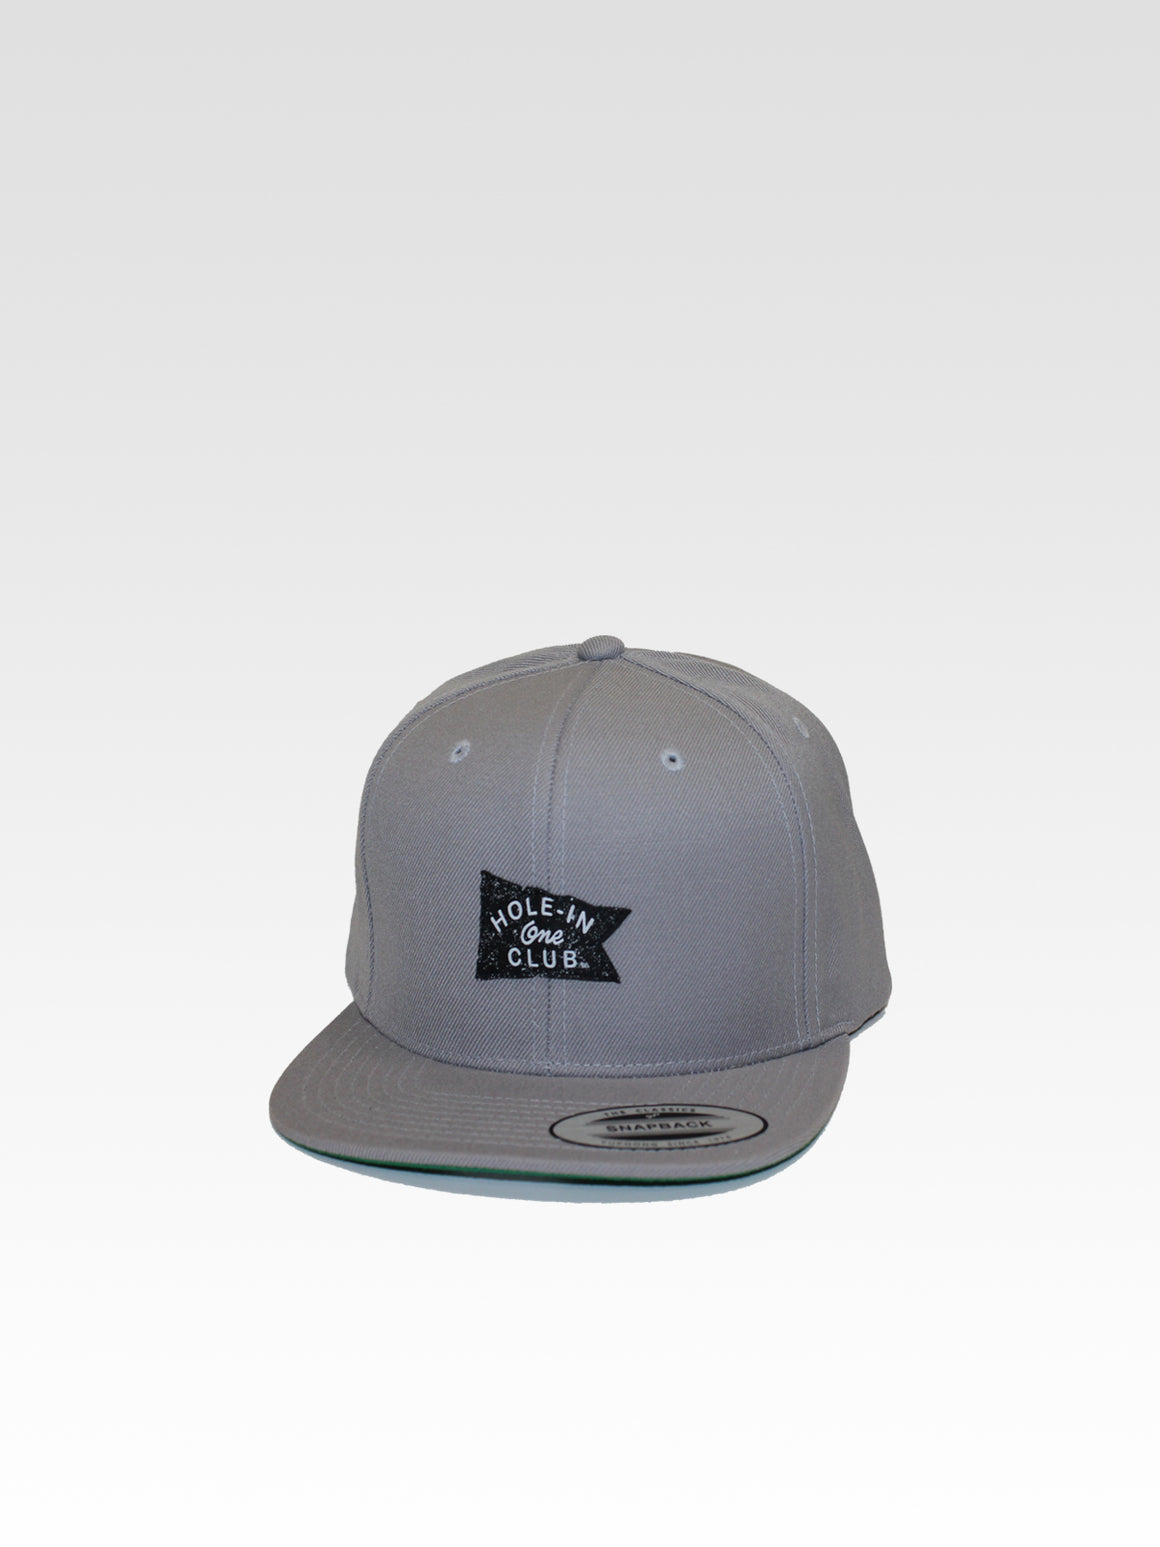 Hole-In-One Snapback - Silver